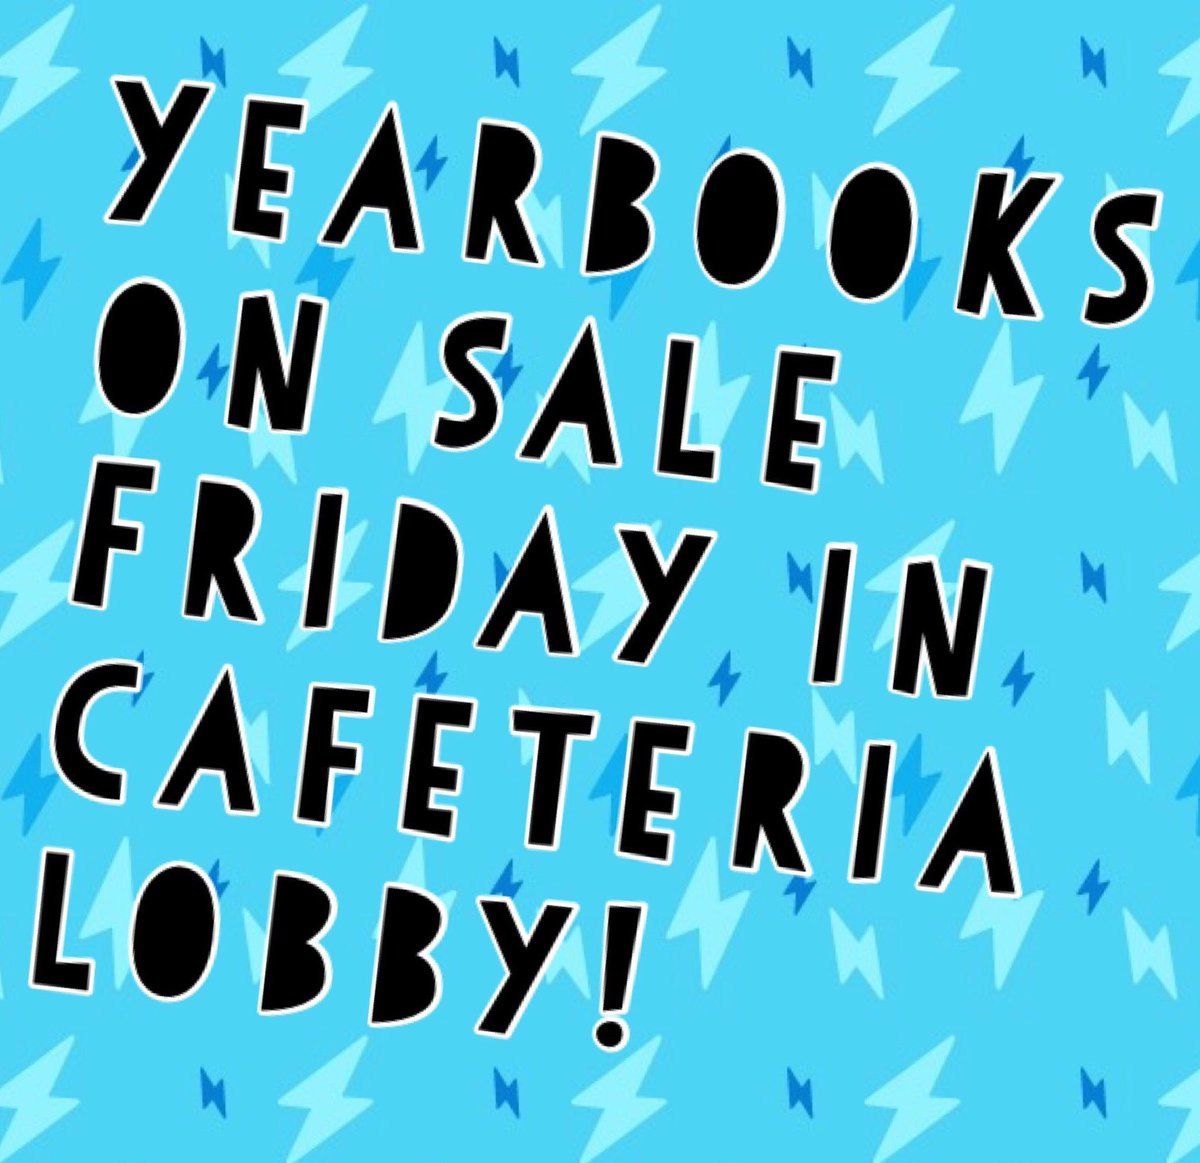 🐾Bulldog Yearbook = $65 Buy now before price increases next month!🐾